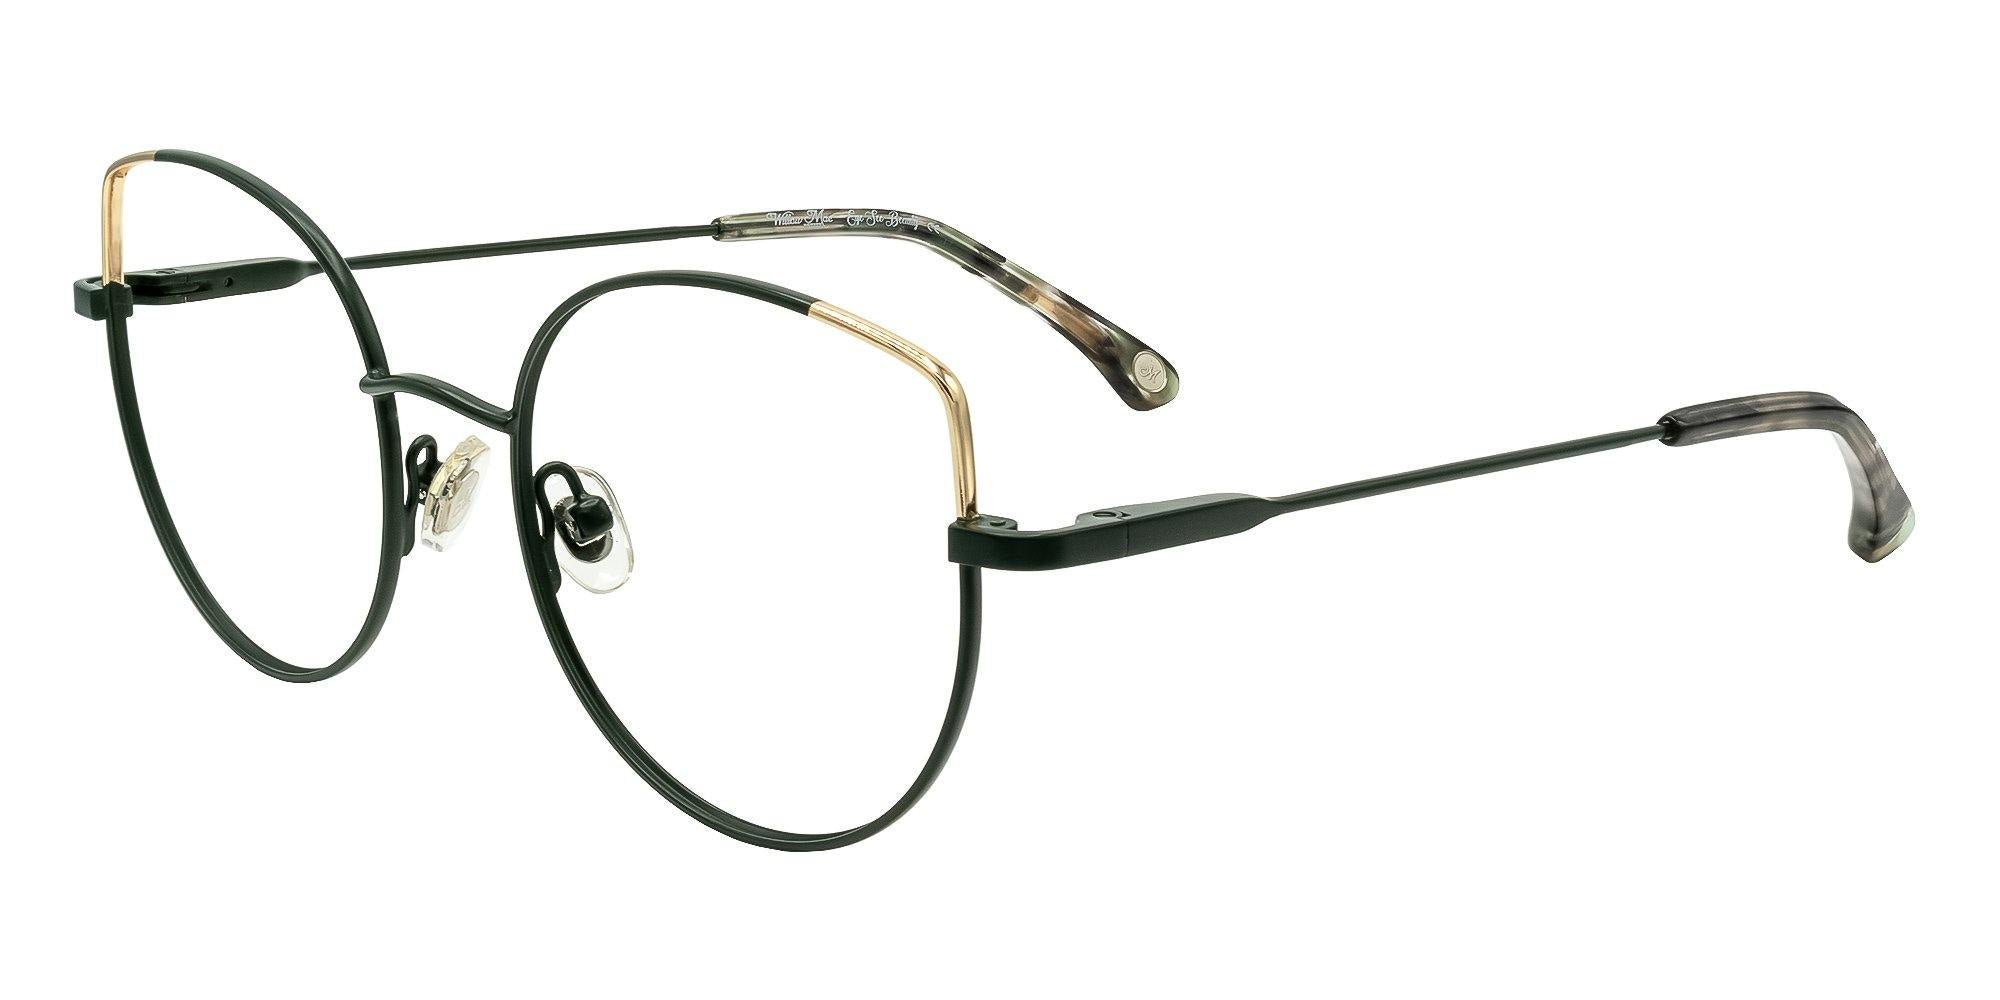 KENZA - Willow Mae Eyewear